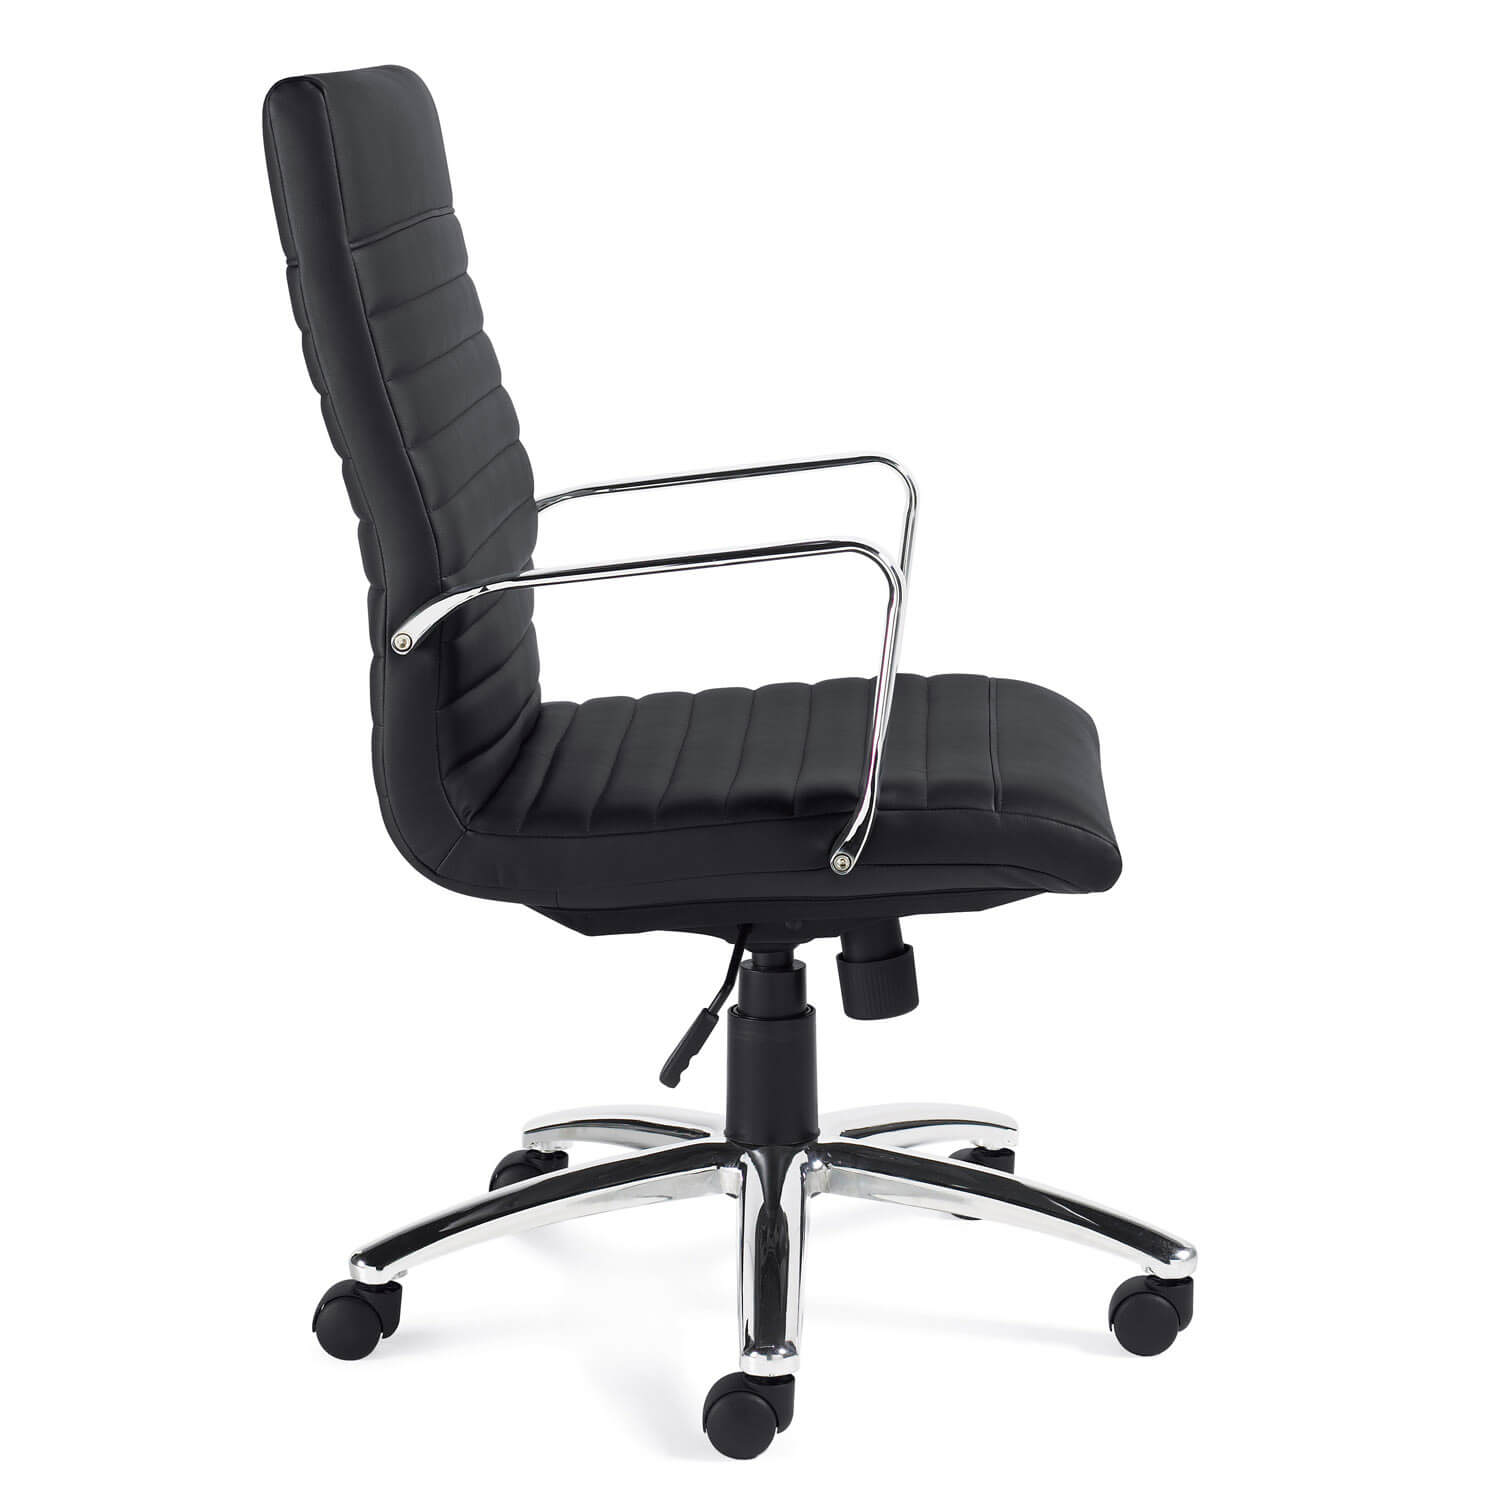 Executive chair side